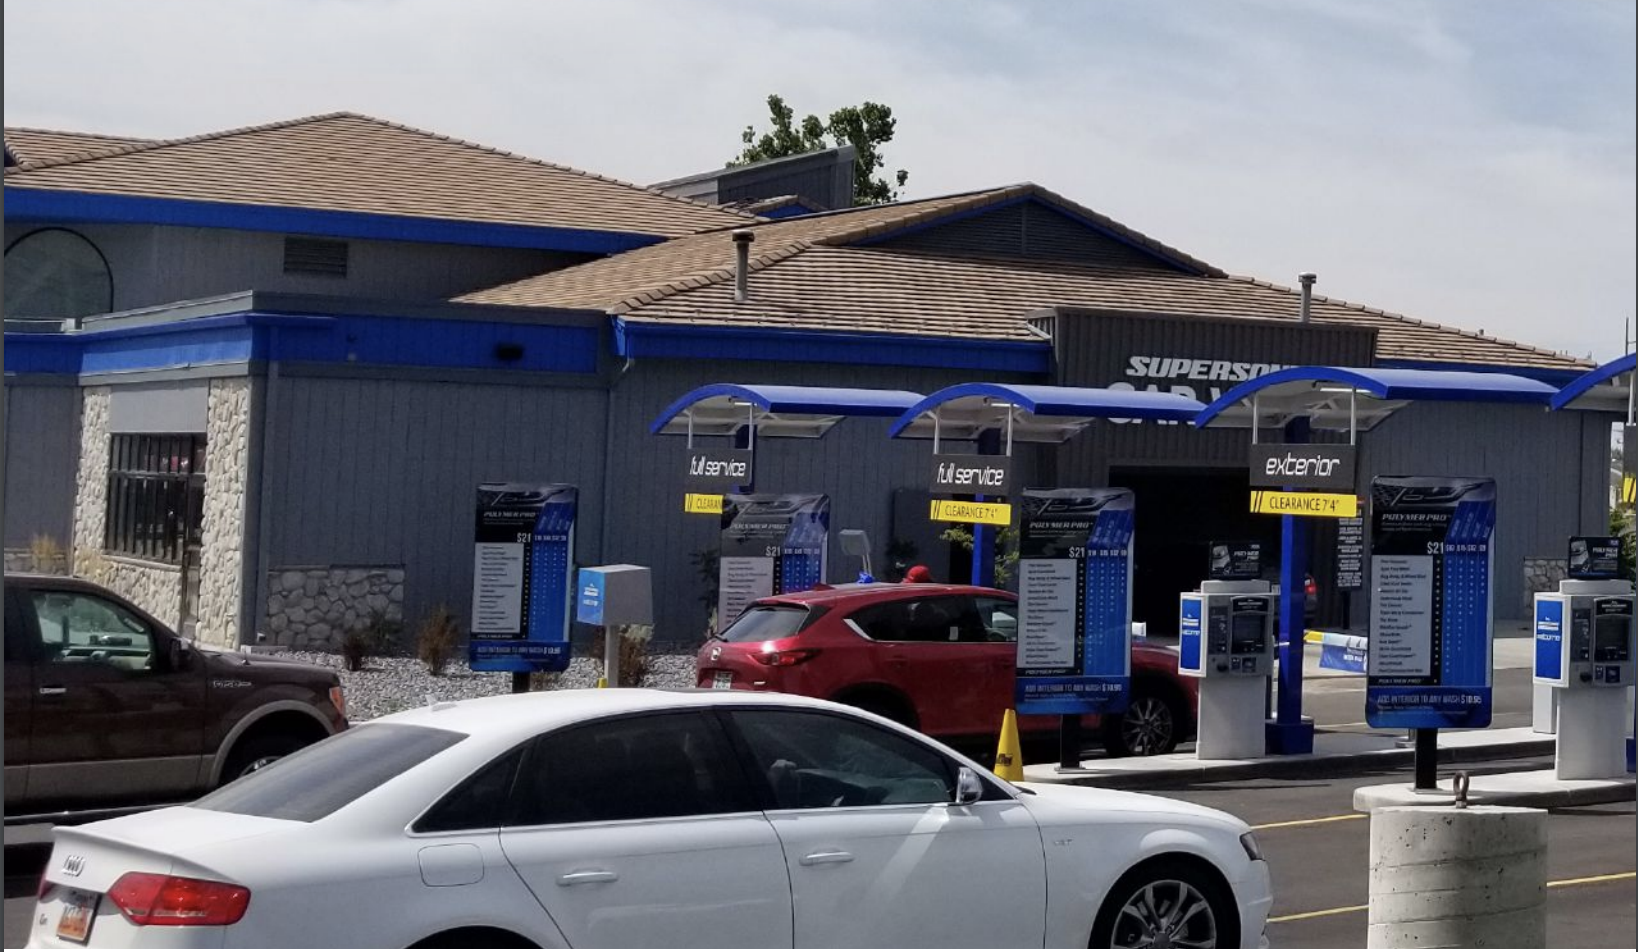 Car wash lot with view of vacuums